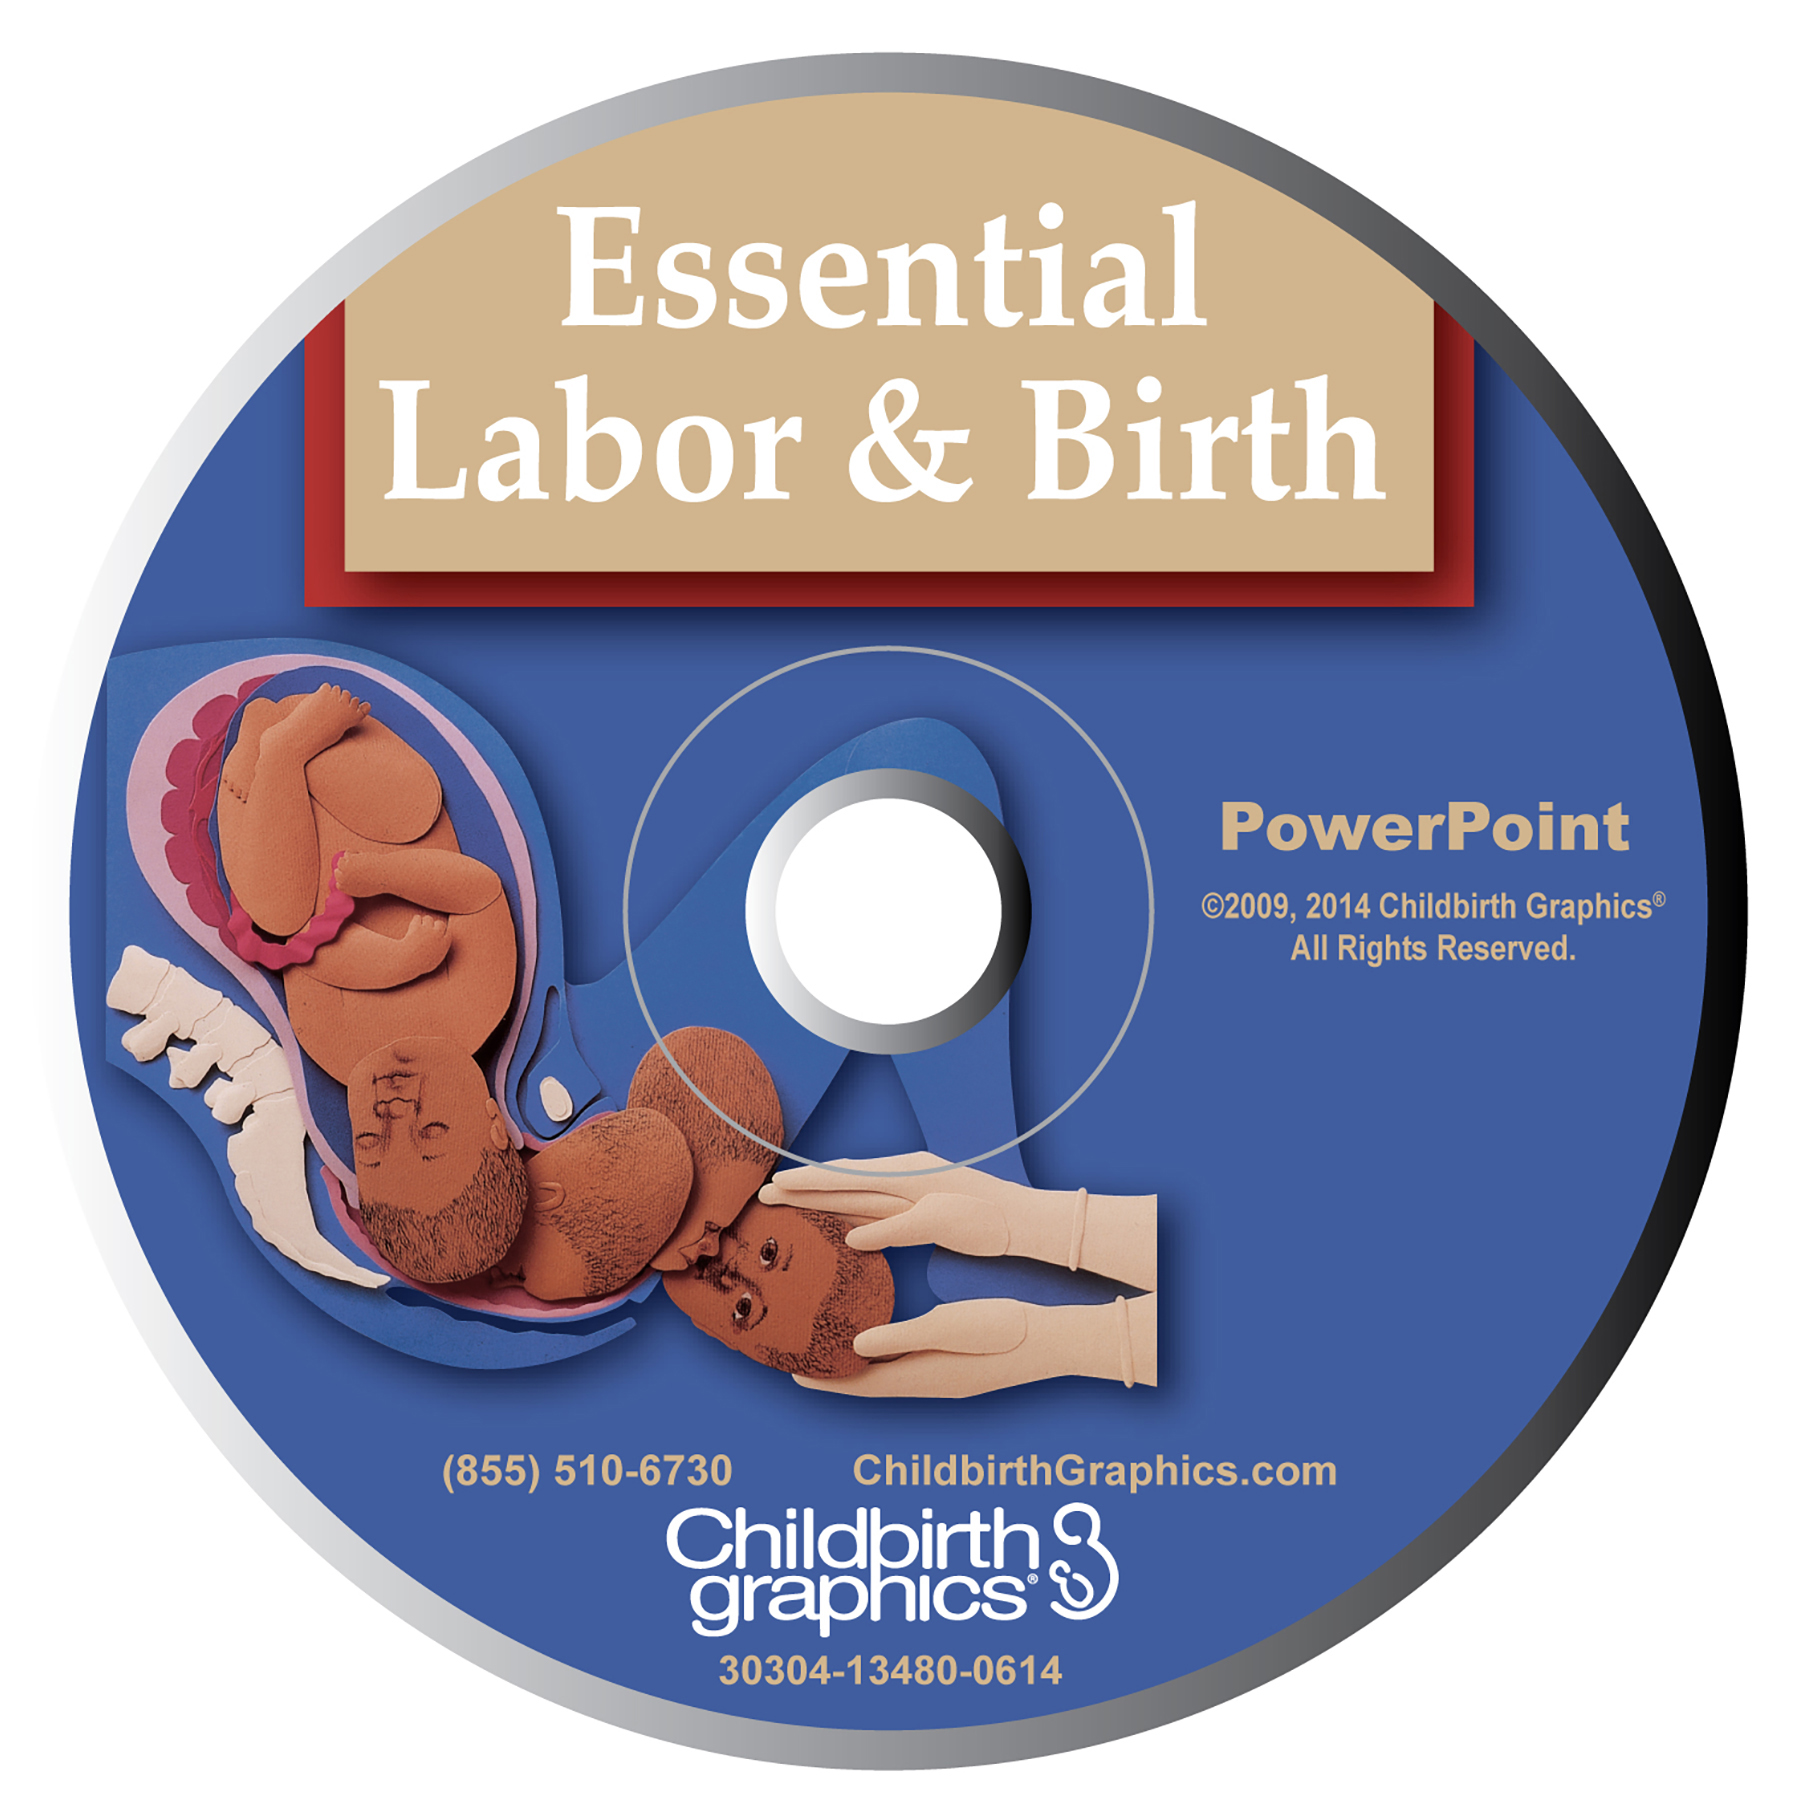 Labor and Birth PowerPoint,English and Spanish powerpoint presentations using paper sculpture illustrations to explain primary labor and birth processes, Childbirth Graphics, 30304